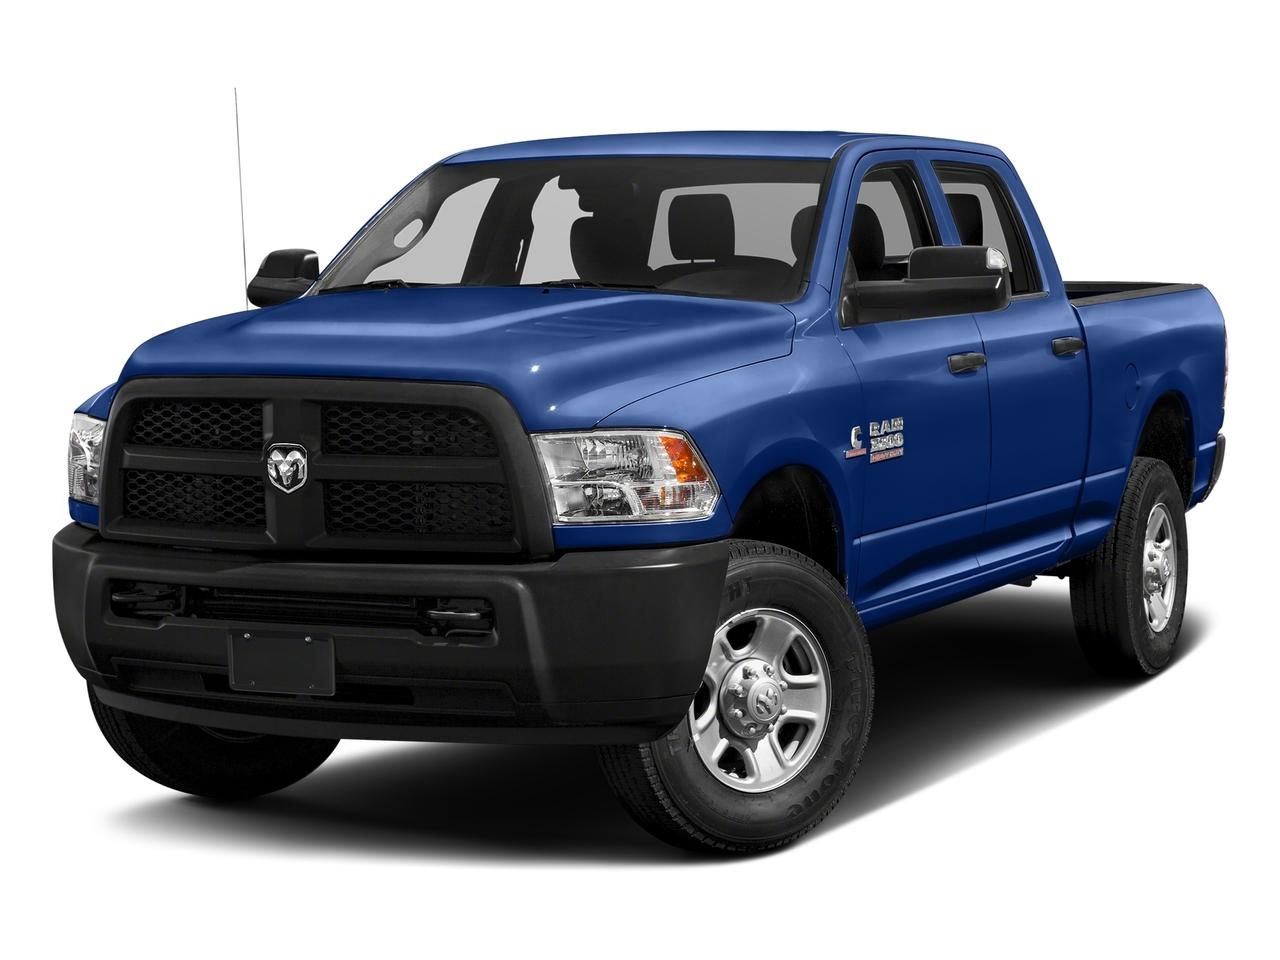 2017 Ram 3500 Vehicle Photo in Prescott, AZ 86305